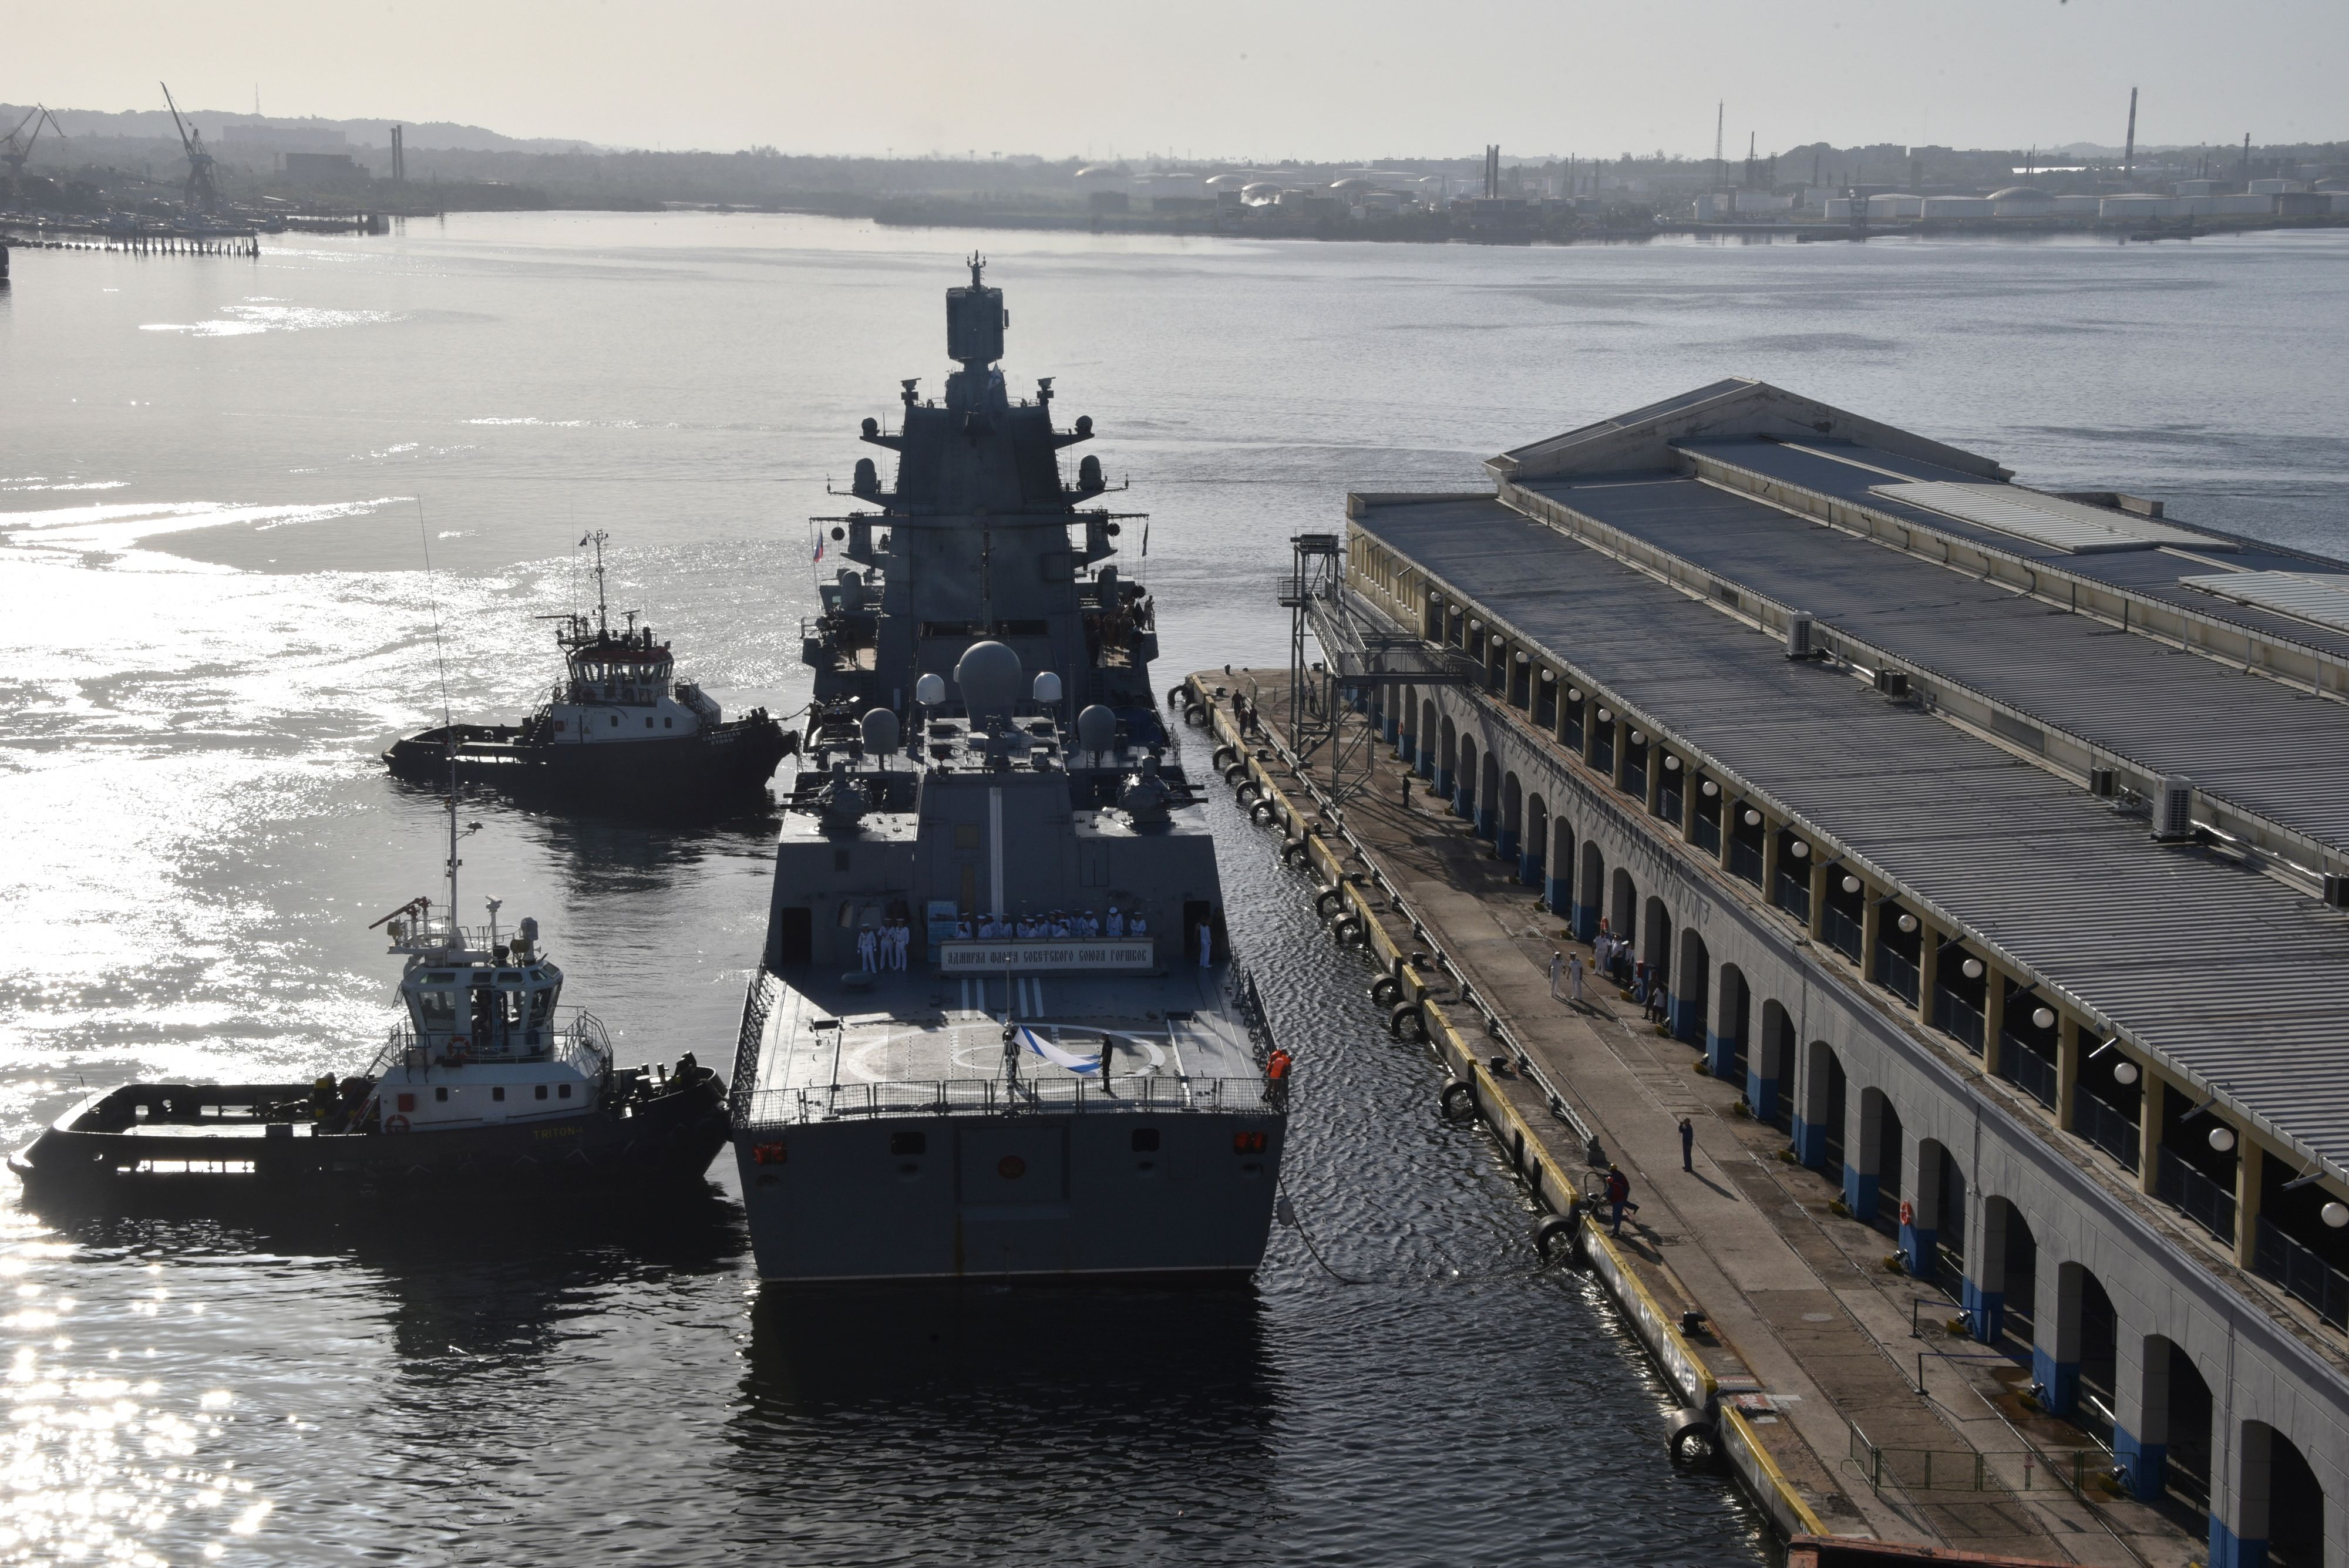 The Russian Federation Navy Admiral Gorshkov frigate is docked in Havana's port on June 24, 2019. (ADALBERTO ROQUE/AFP/Getty Images)